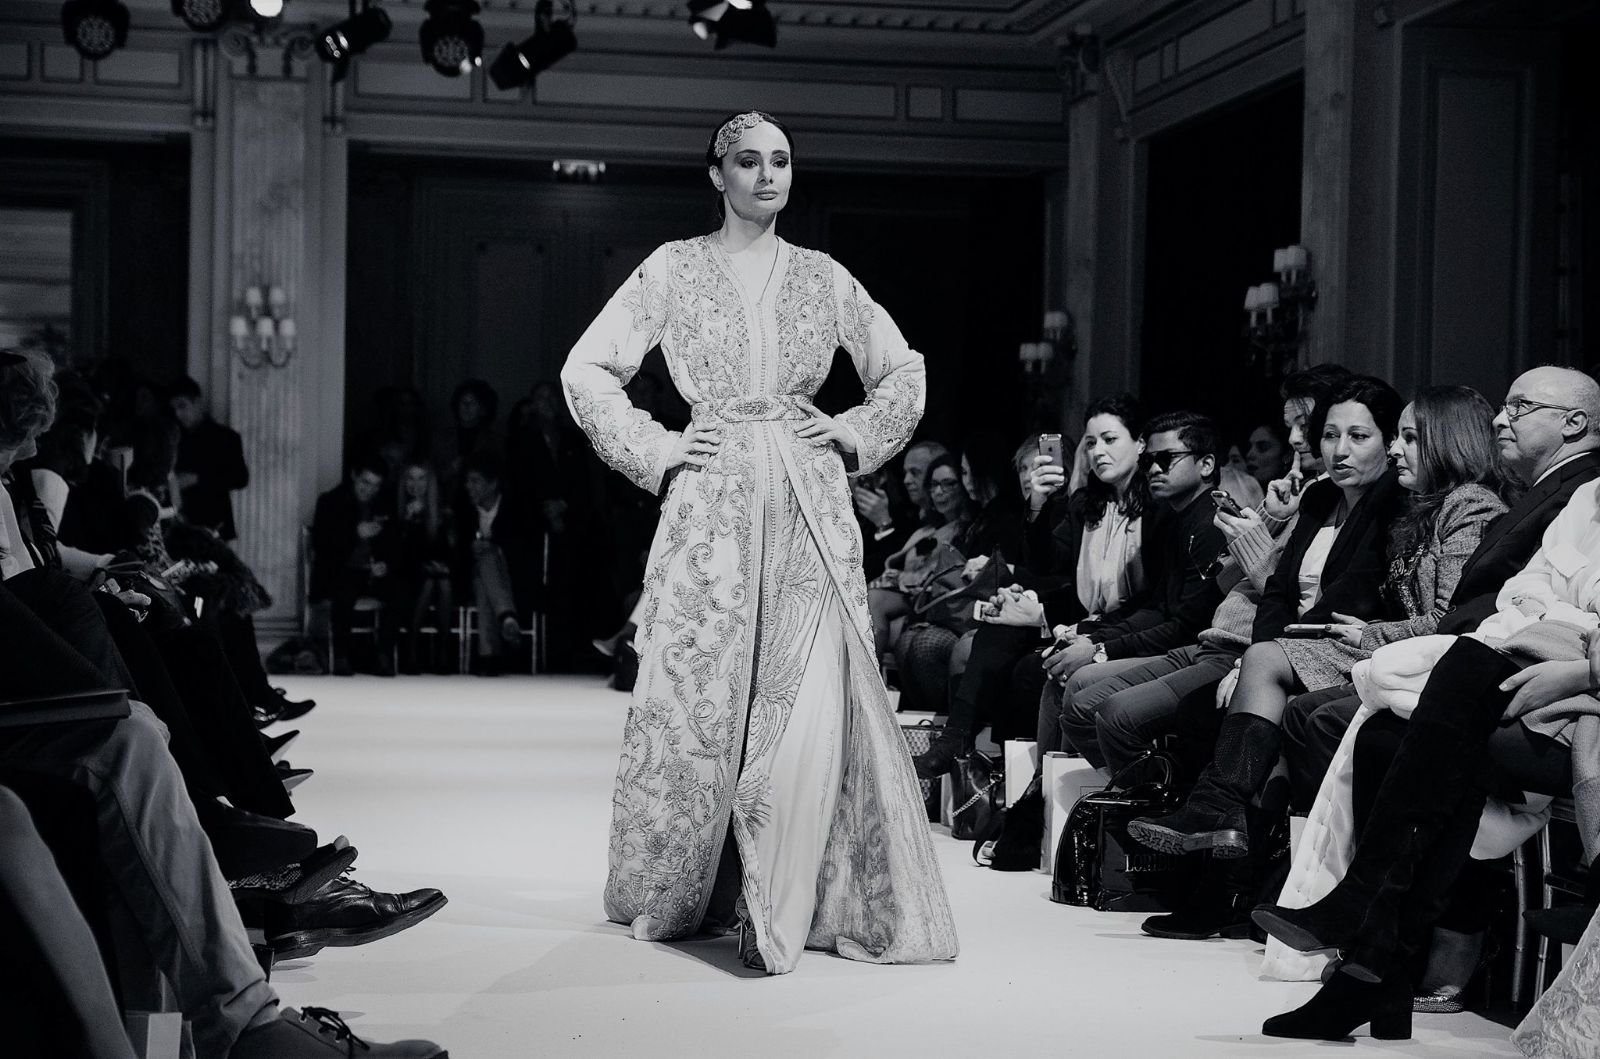 Paris Haute Couture Fashion Week - Filali Couture